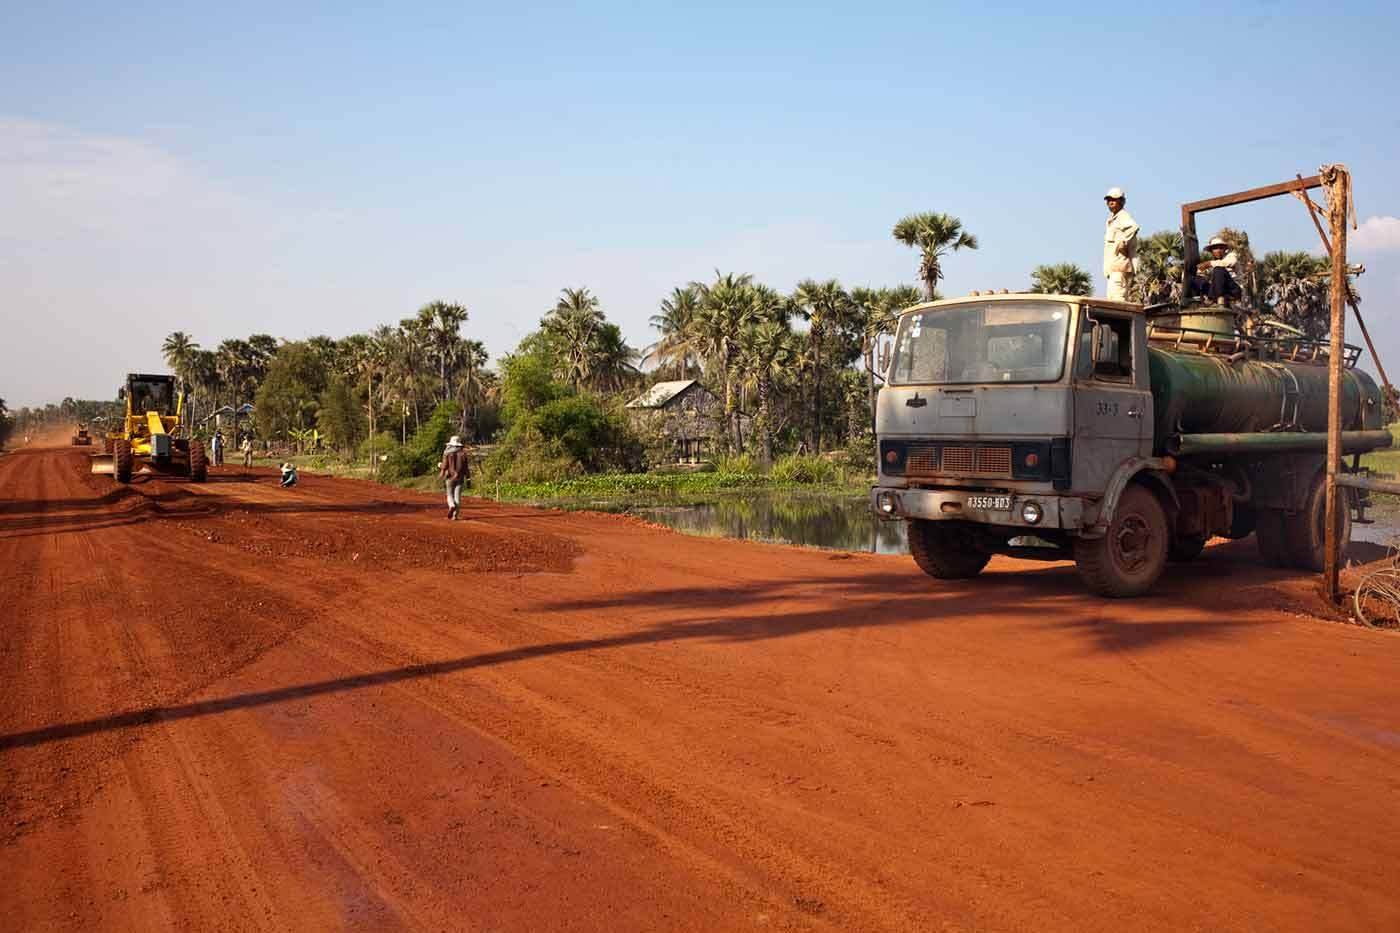 Building new roads in Cambodia : BUSINESS & INDUSTRY : Viviane Moos |  Documentary Photographer